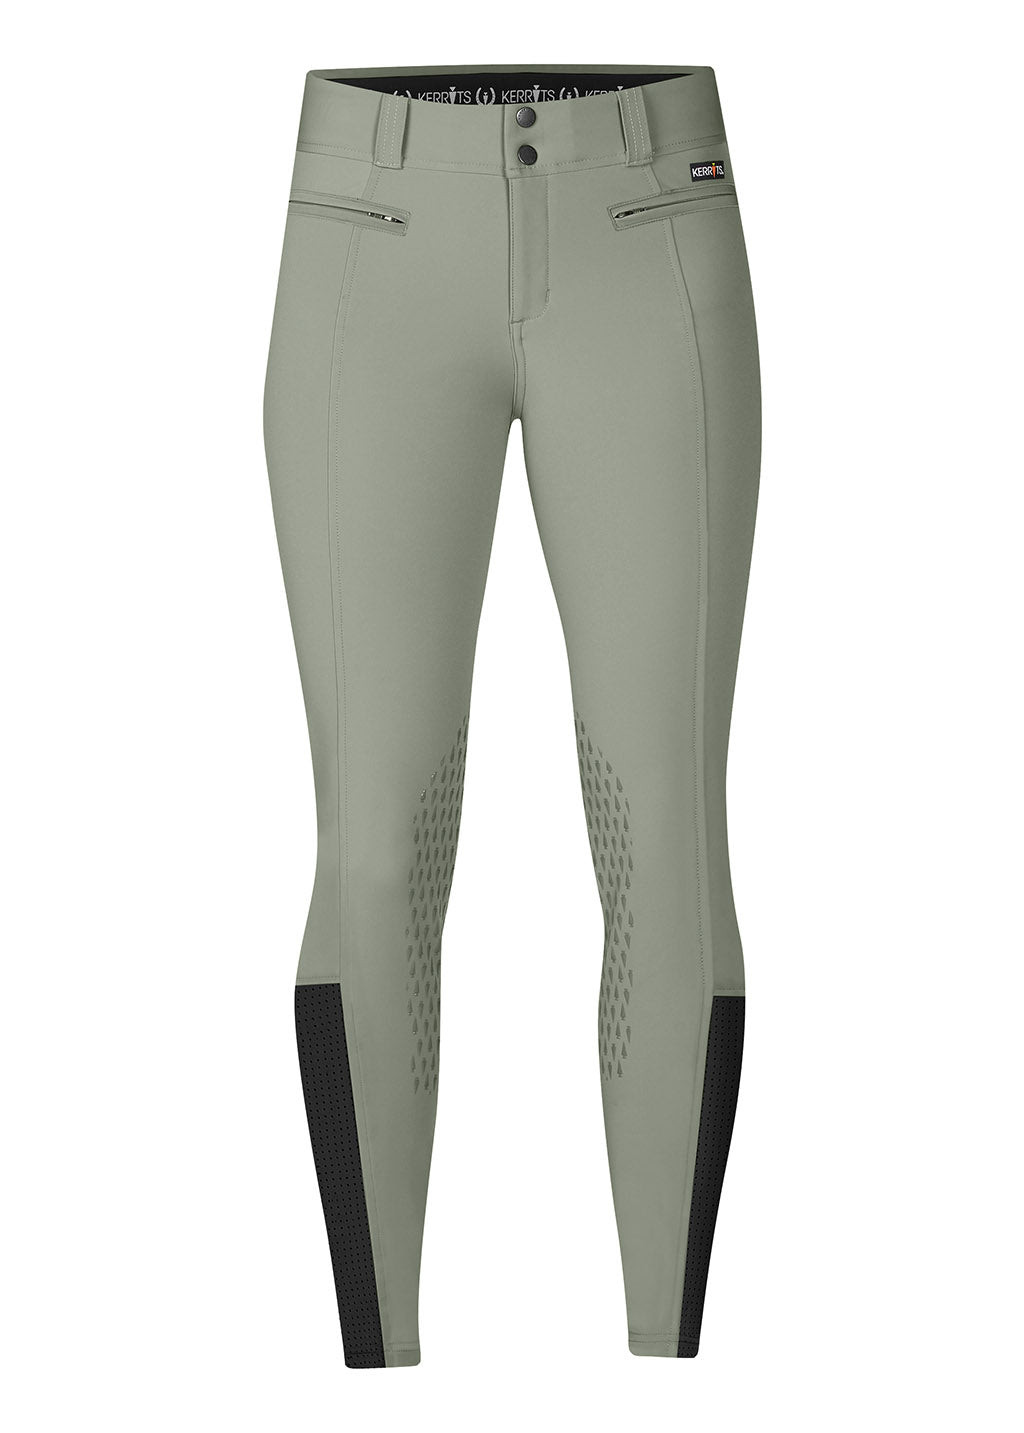 LICHEN::variant::Affinity Ice Fil Knee Patch Breech Front View